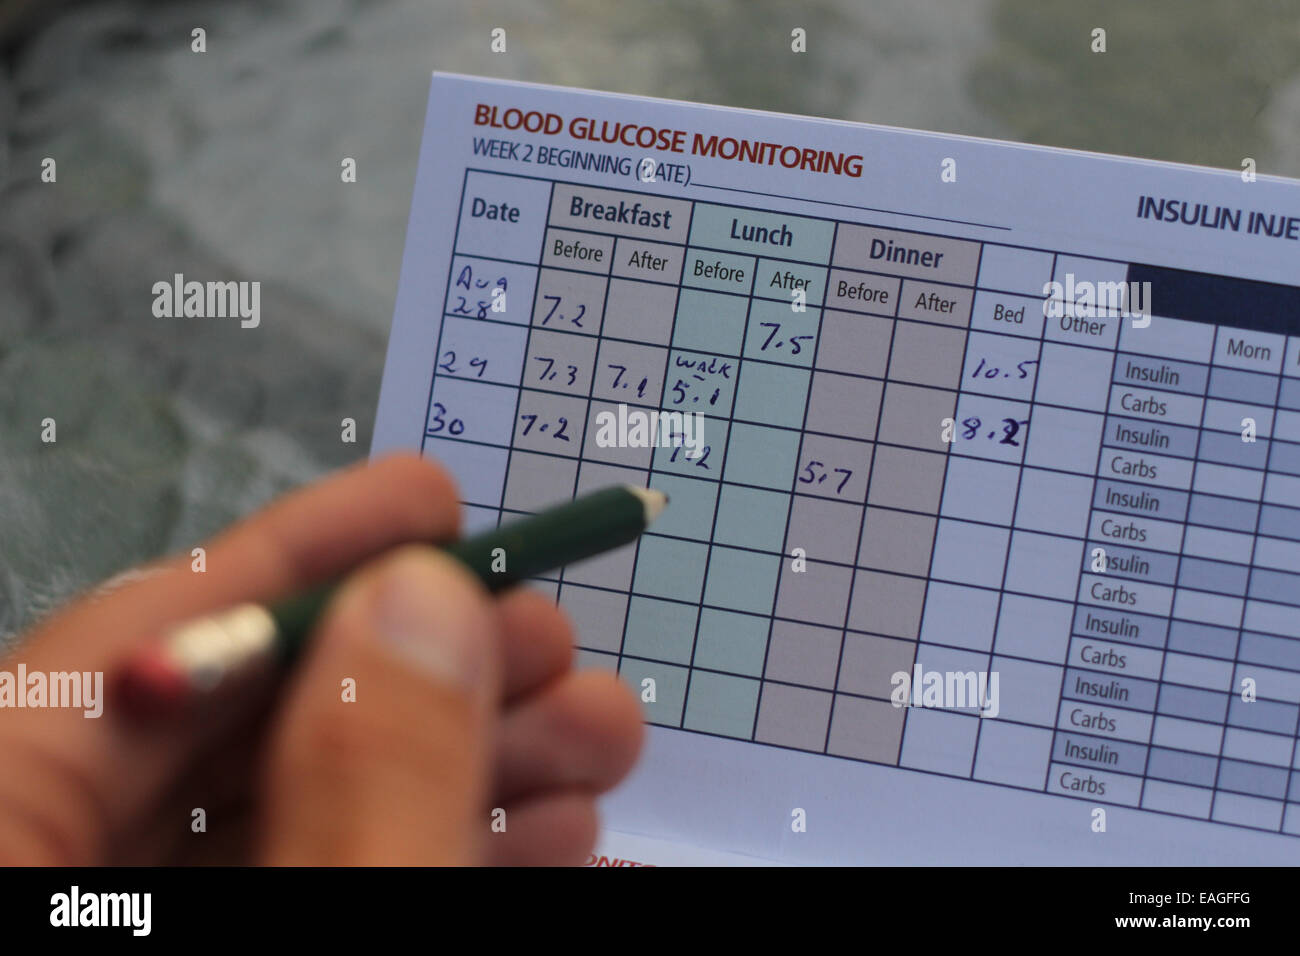 Keeping Track Of Blood Sugar Stock Photos Keeping Track Of Blood